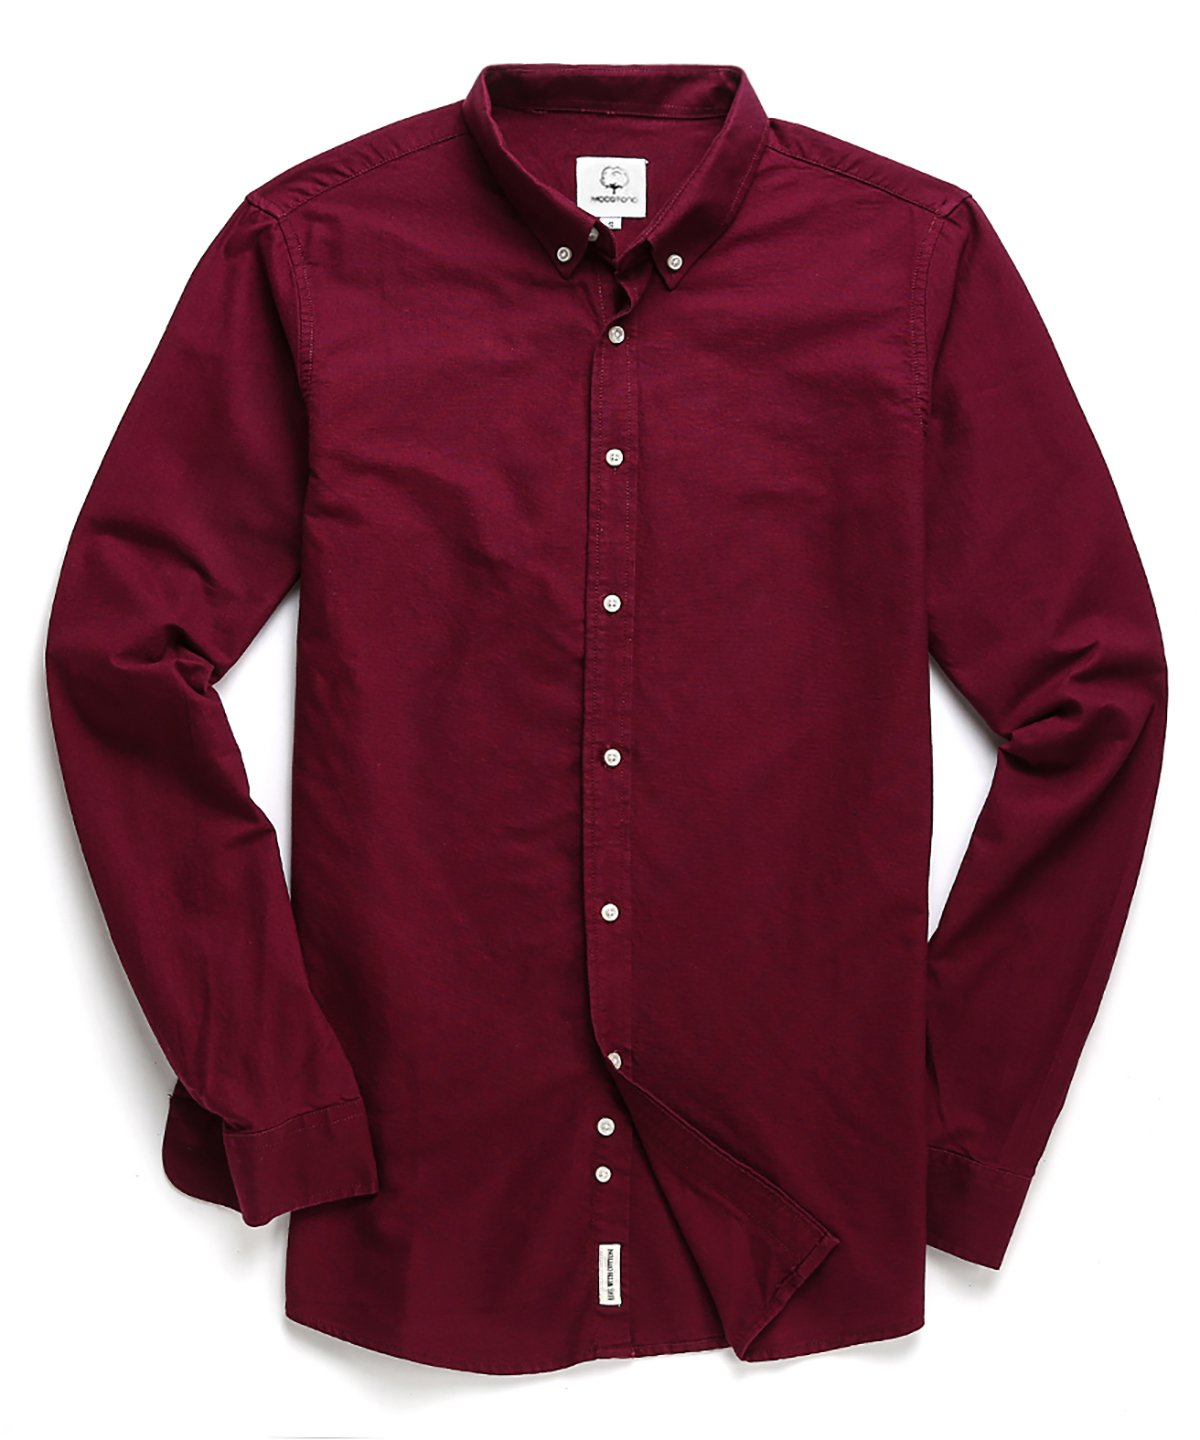 MOCOTONO Men's Oxford Long Sleeve Button Down Casual Dress Shirt